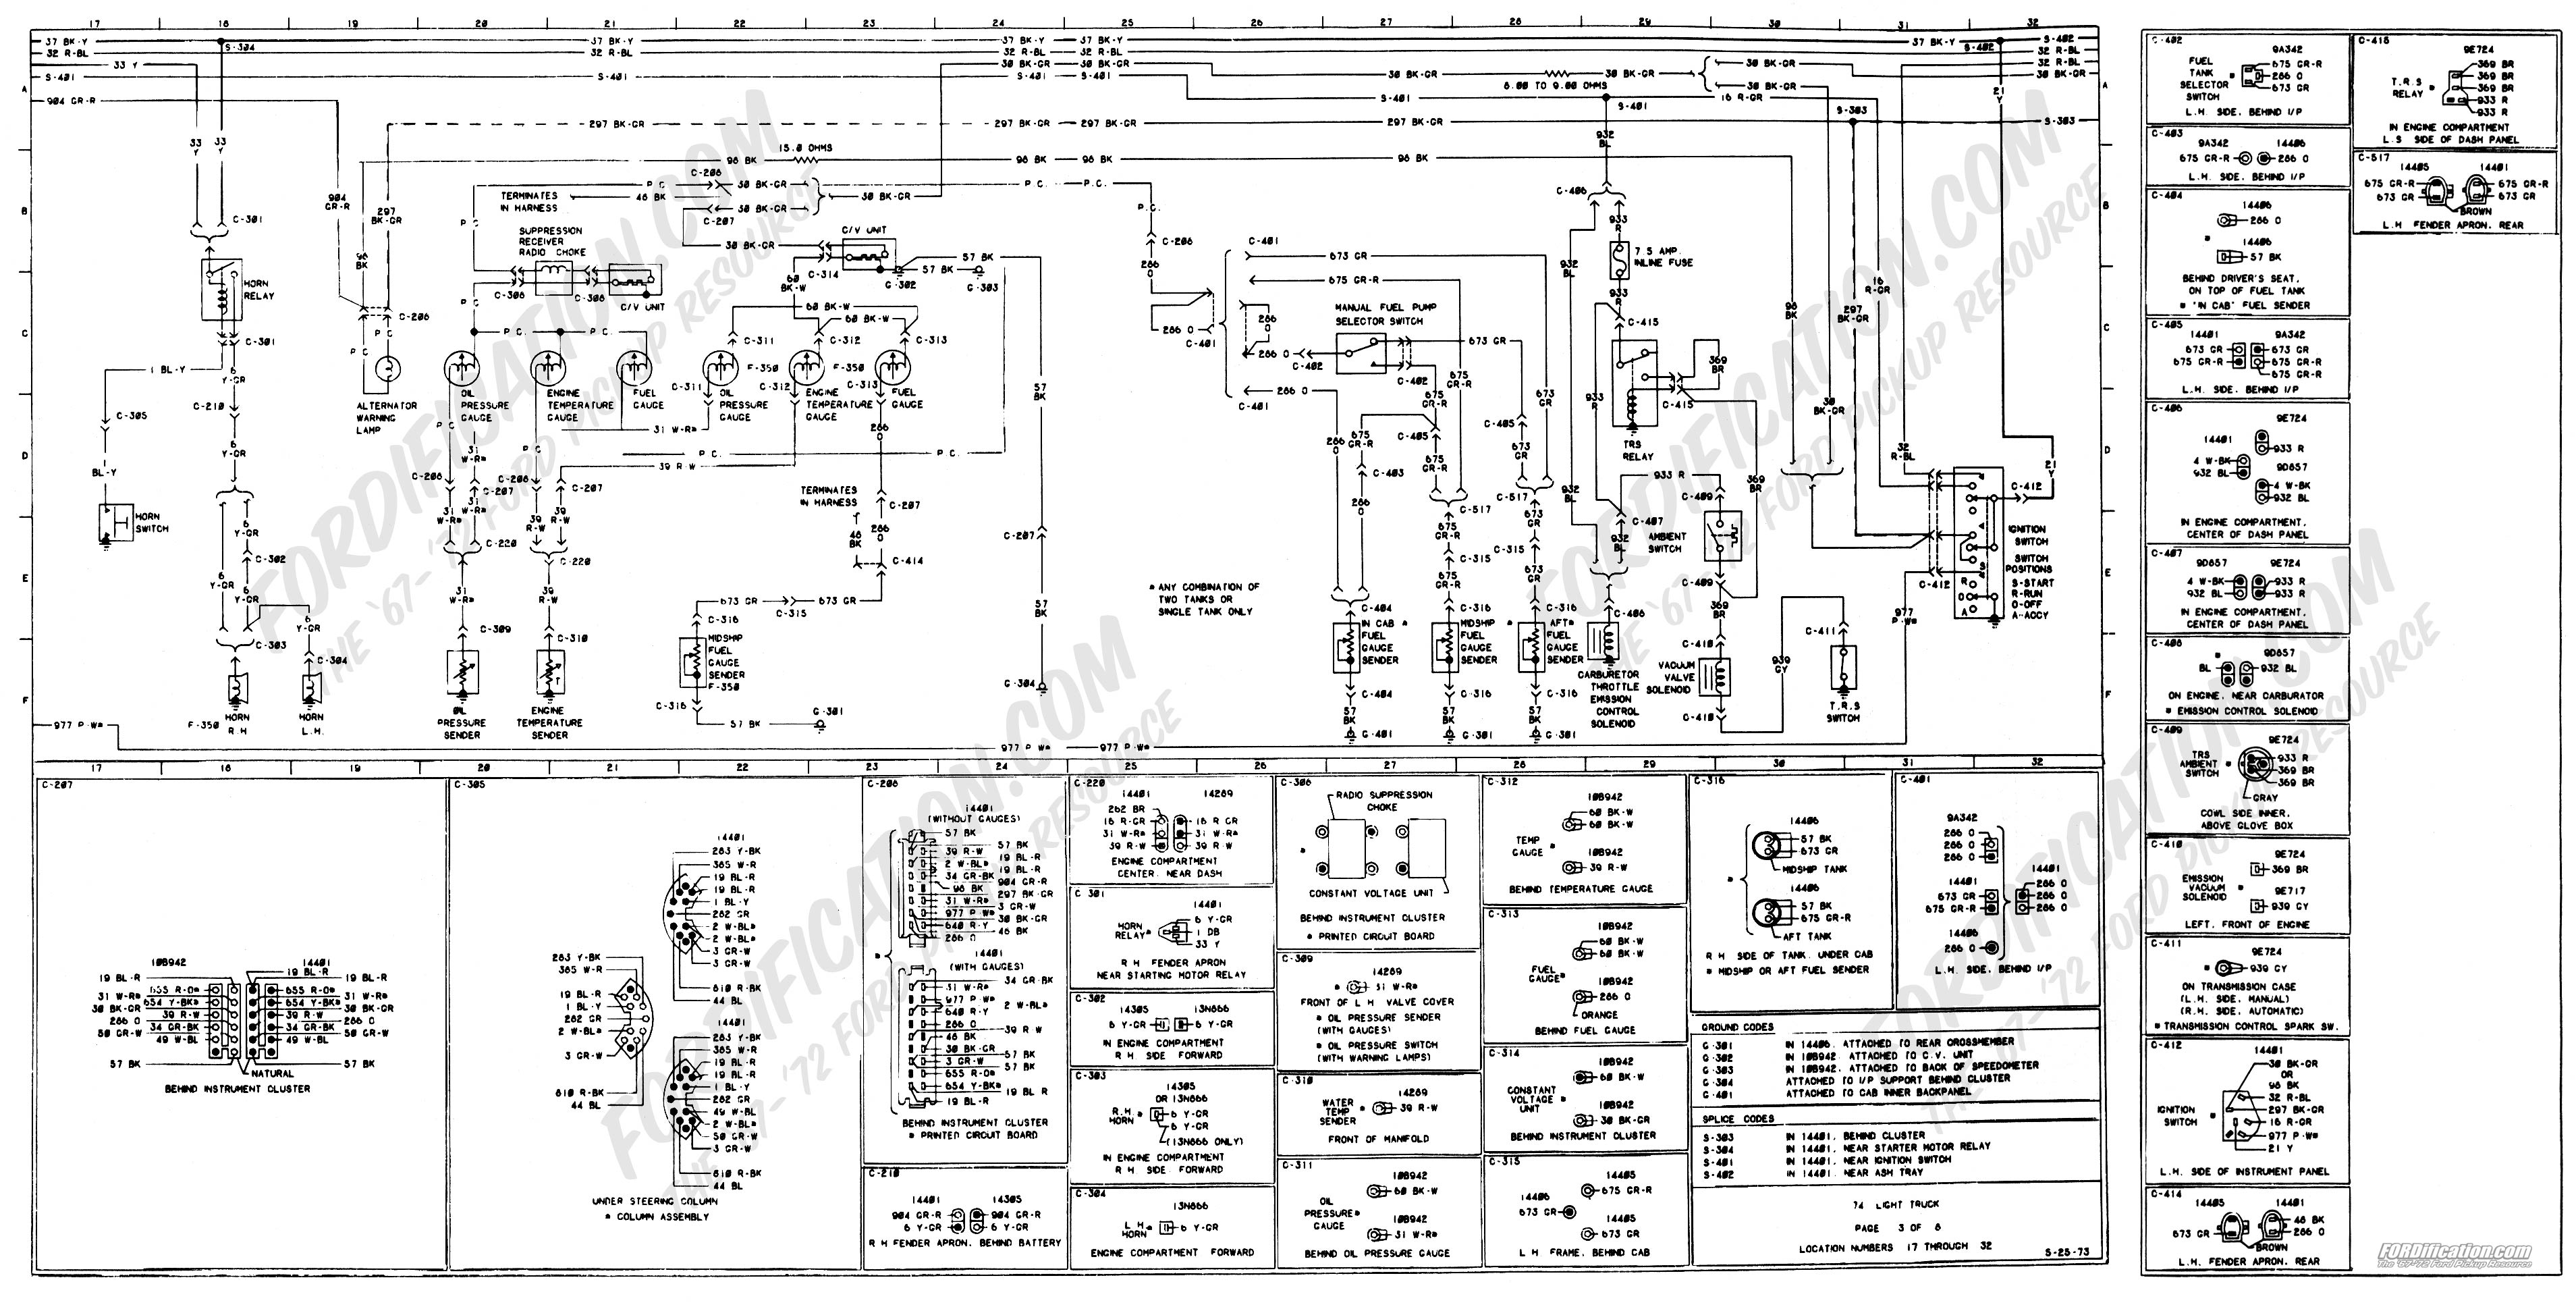 1973 1979 Ford Truck Wiring Diagrams & Schematics Fordification Net 1983 Ford  460 Wiring-Diagram 1994 Ford E350 Wiring Harness